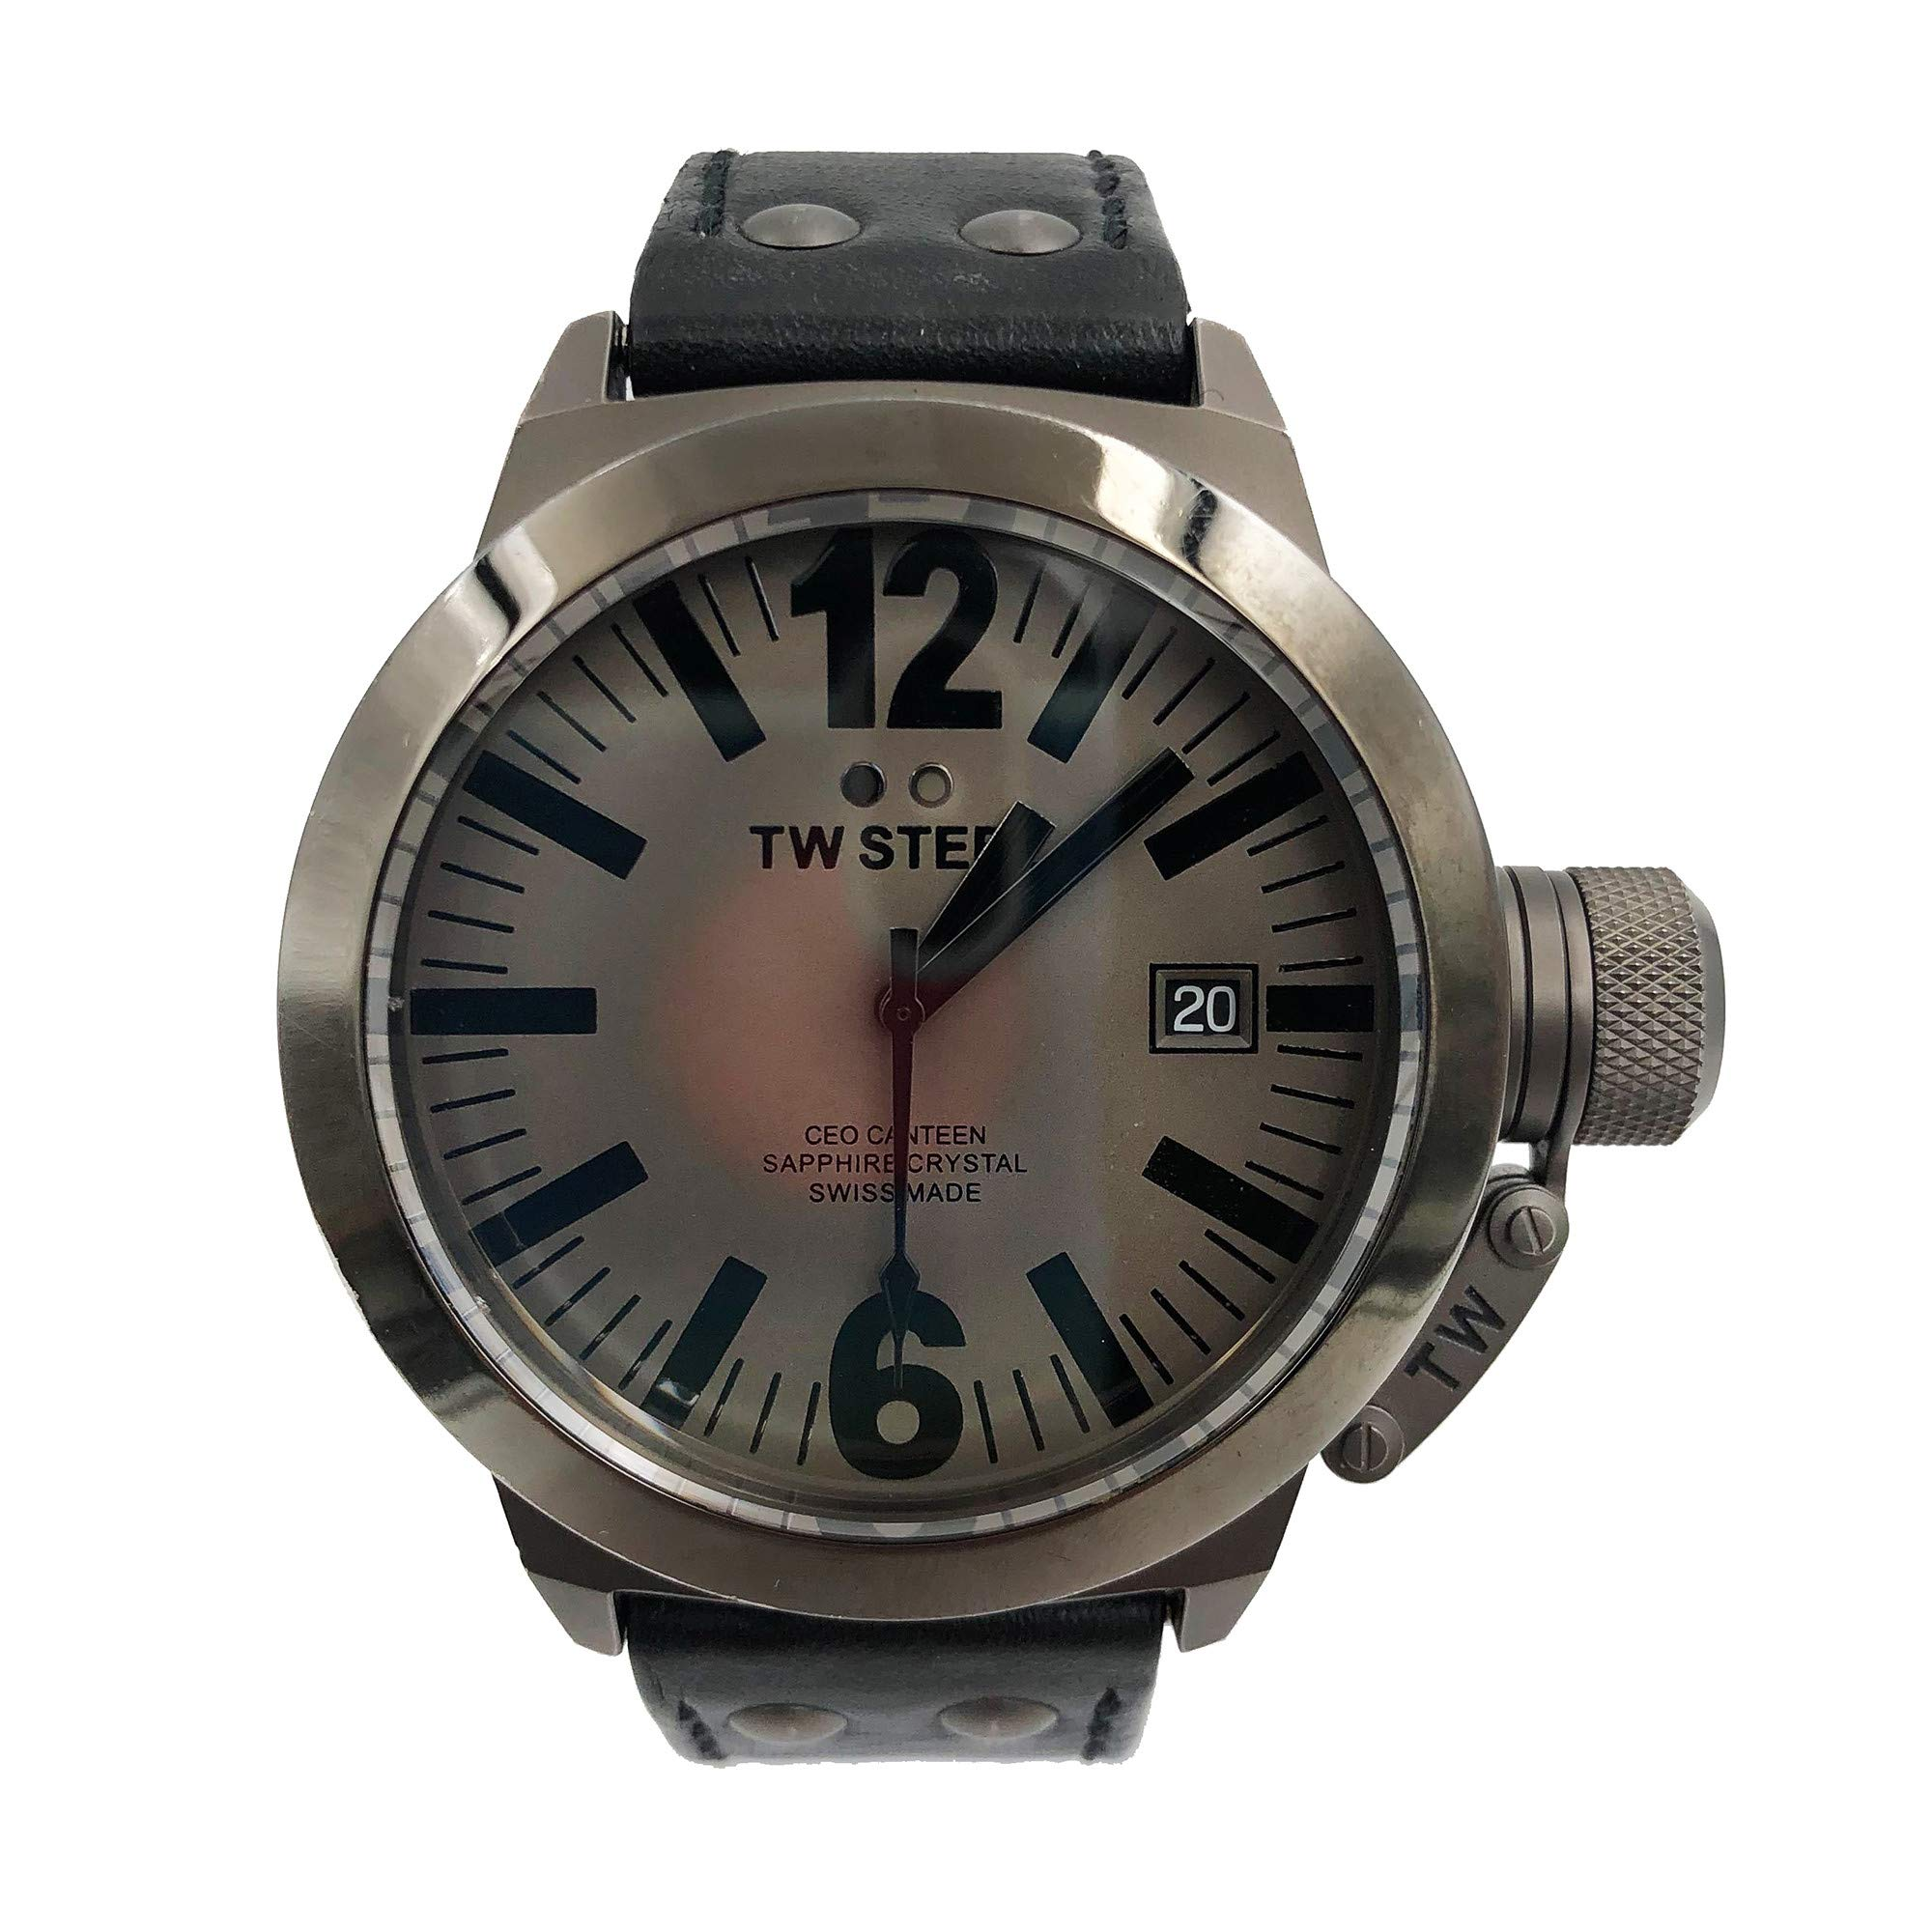 TW Steel CEO Quartz Male Watch CE1051 (Certified Pre-Owned) by TW Steel (Image #1)